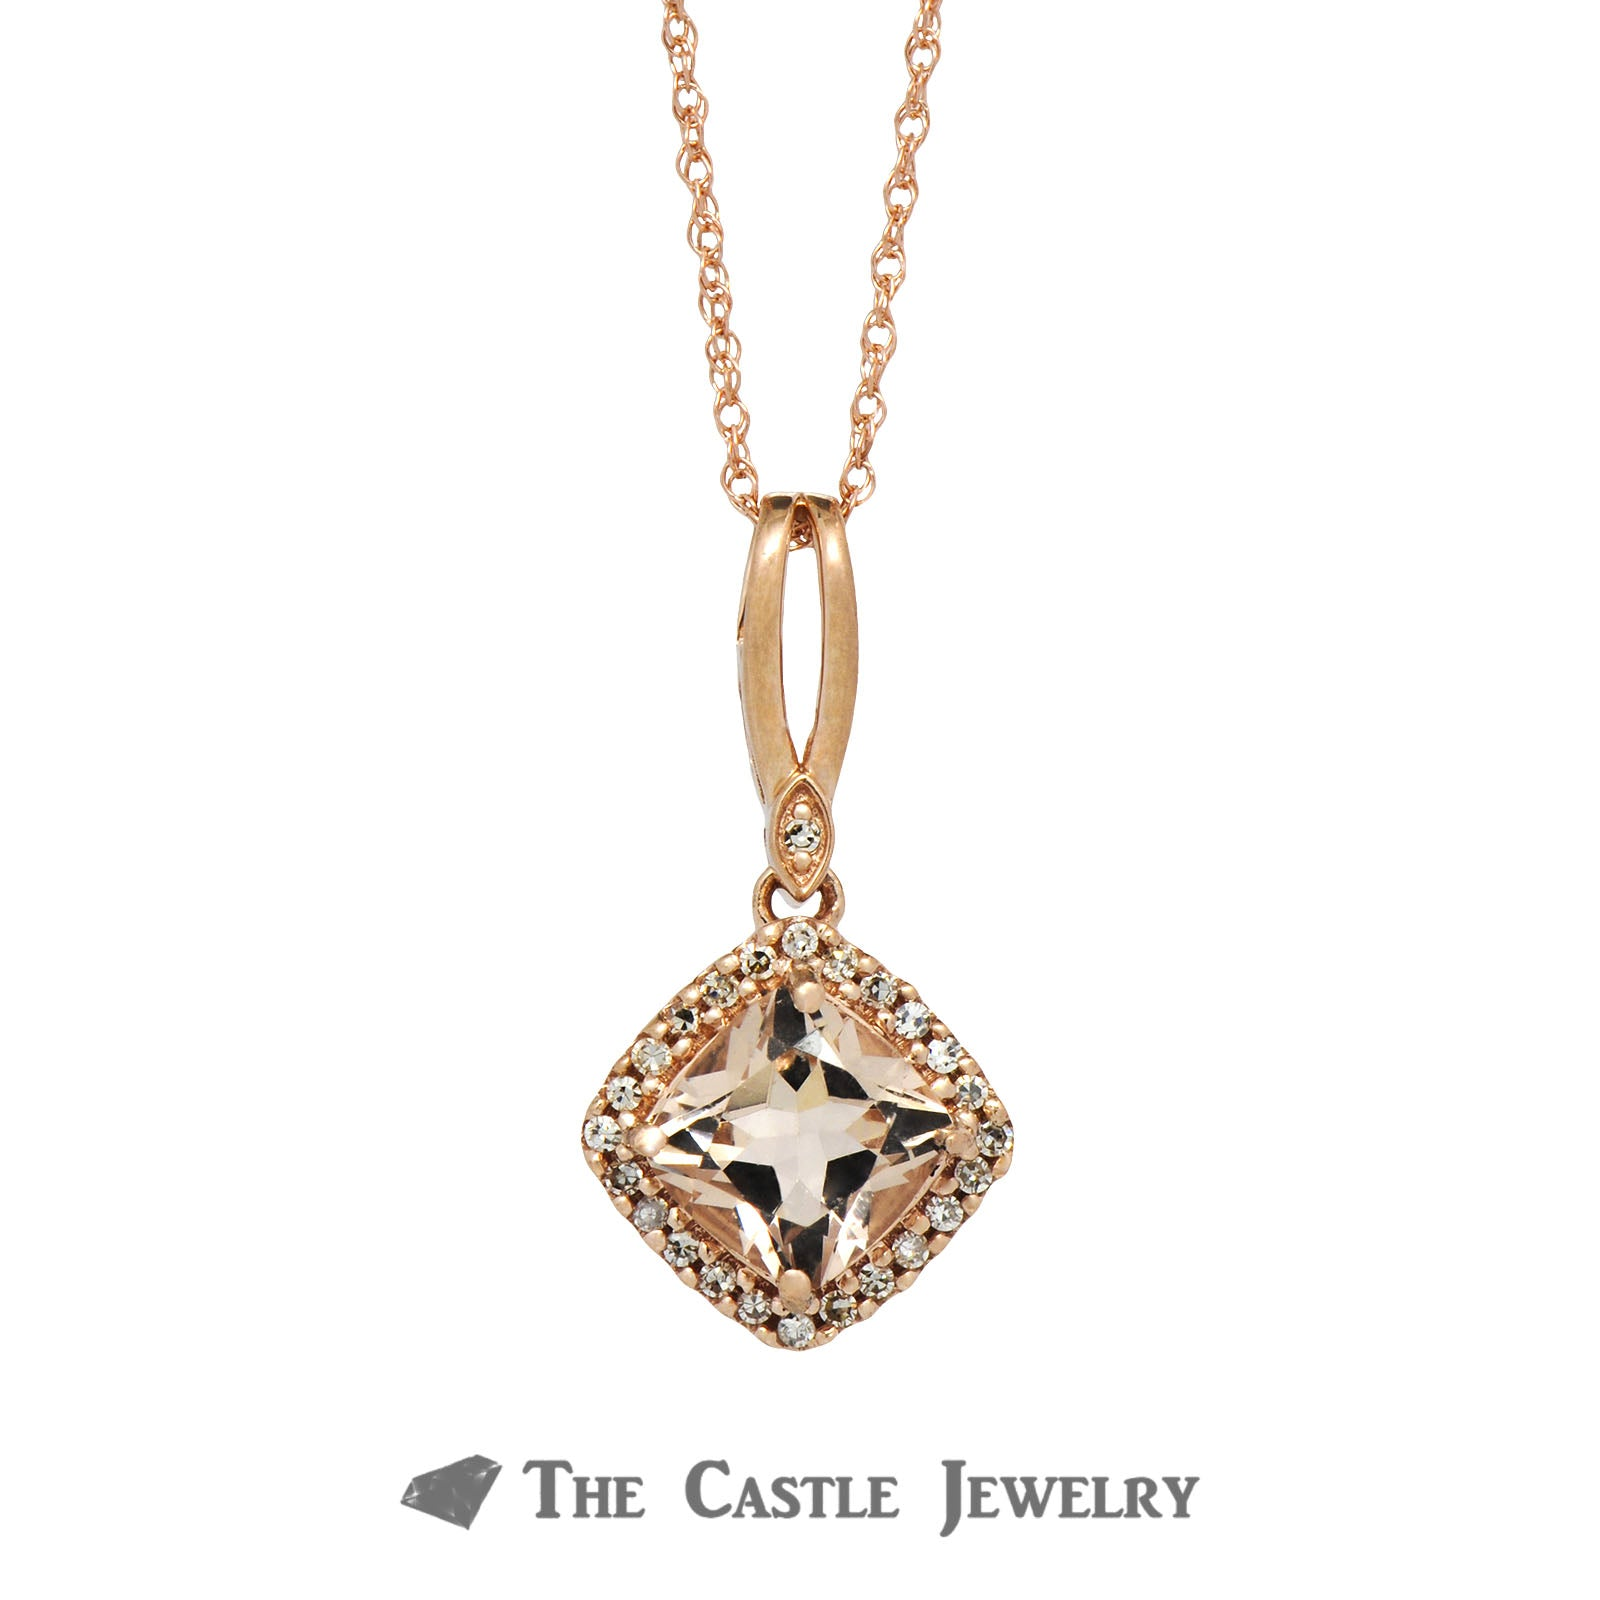 Cushion Cut Morganite Necklace with Diamond Bezel 14K Rose Gold-1